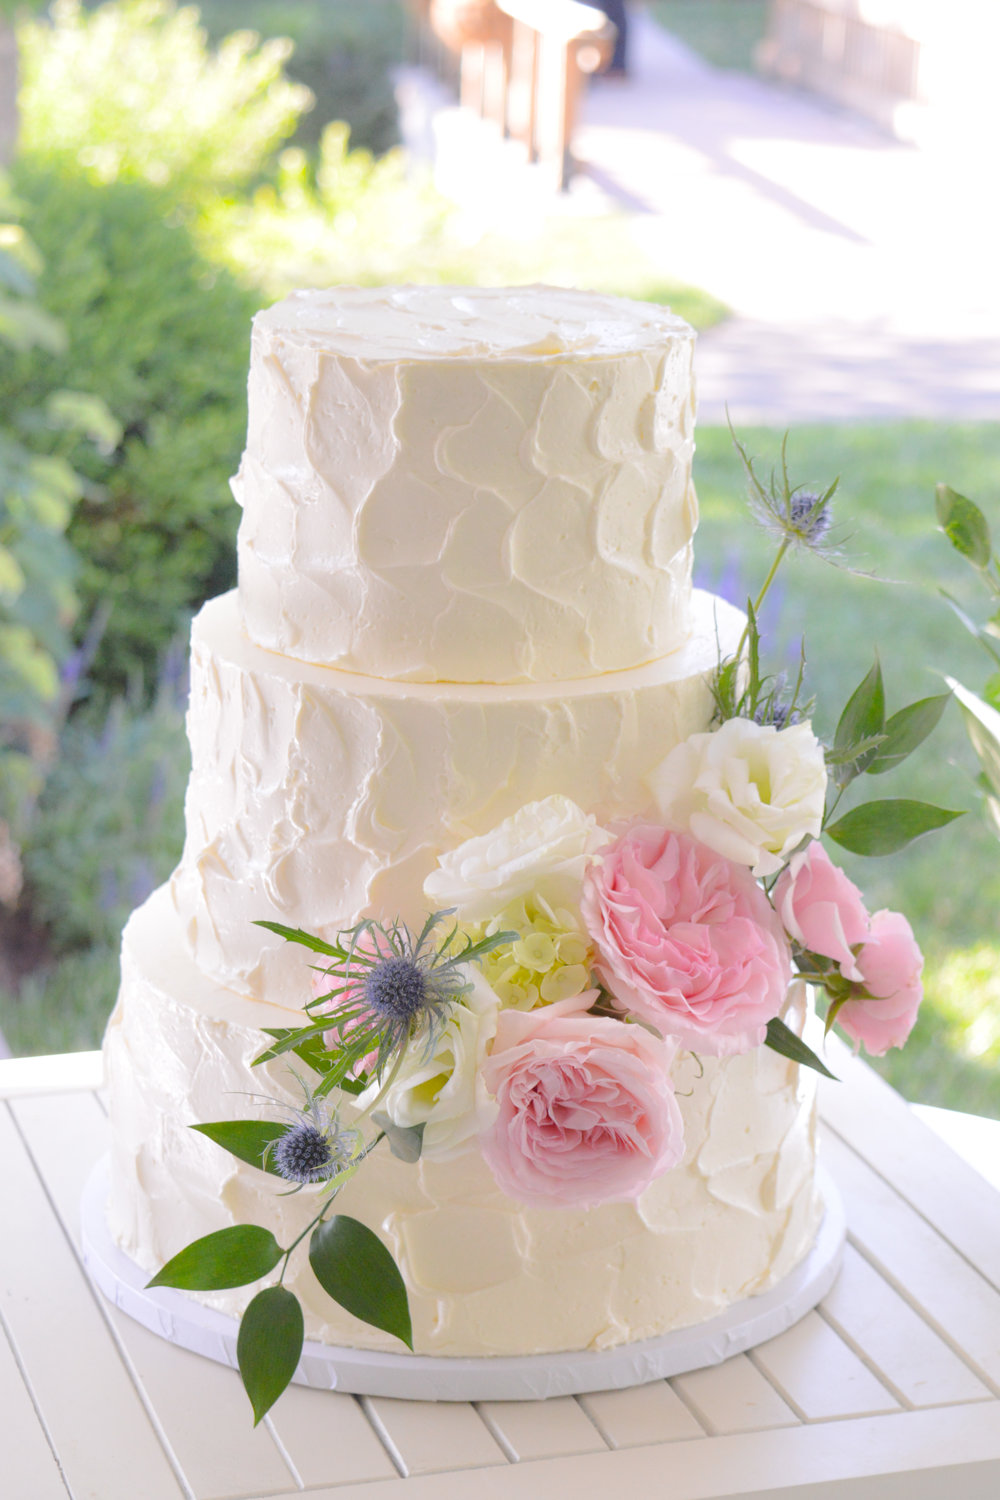 Gallery — Fresh Baked Wedding Cake Roanoke VA